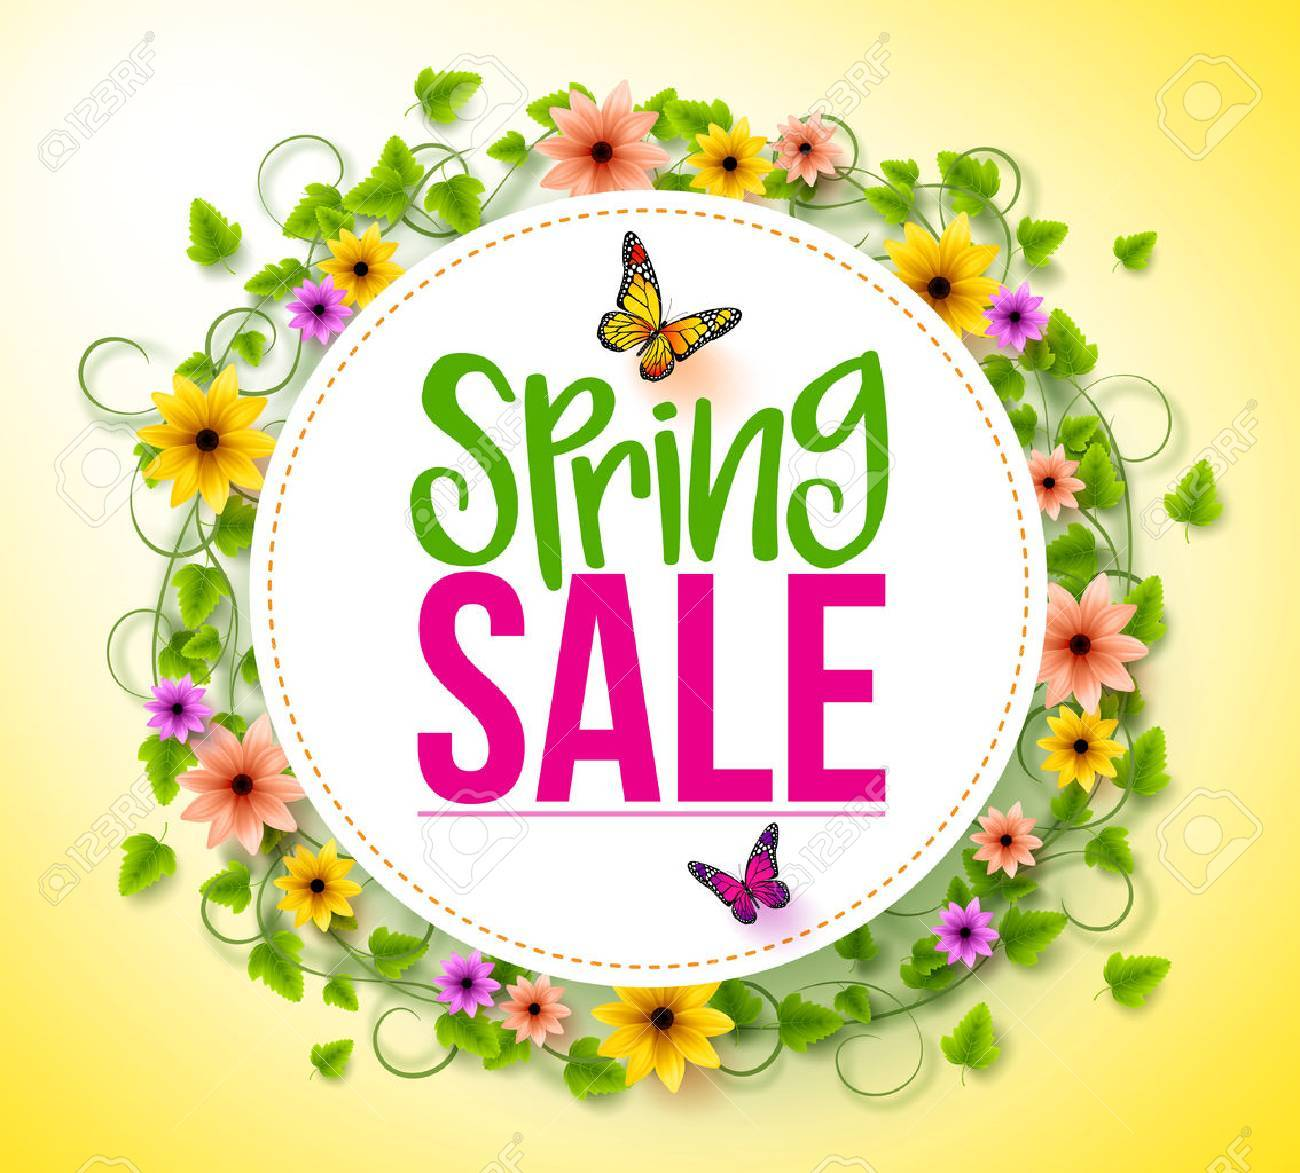 Spring Sale in a White Circle with Wreath of Colorful Flowers, Vines and Leaves with Flying Butterflies for Spring Seasonal Promotion. 3D Realistic Vector Illustration - 51870884